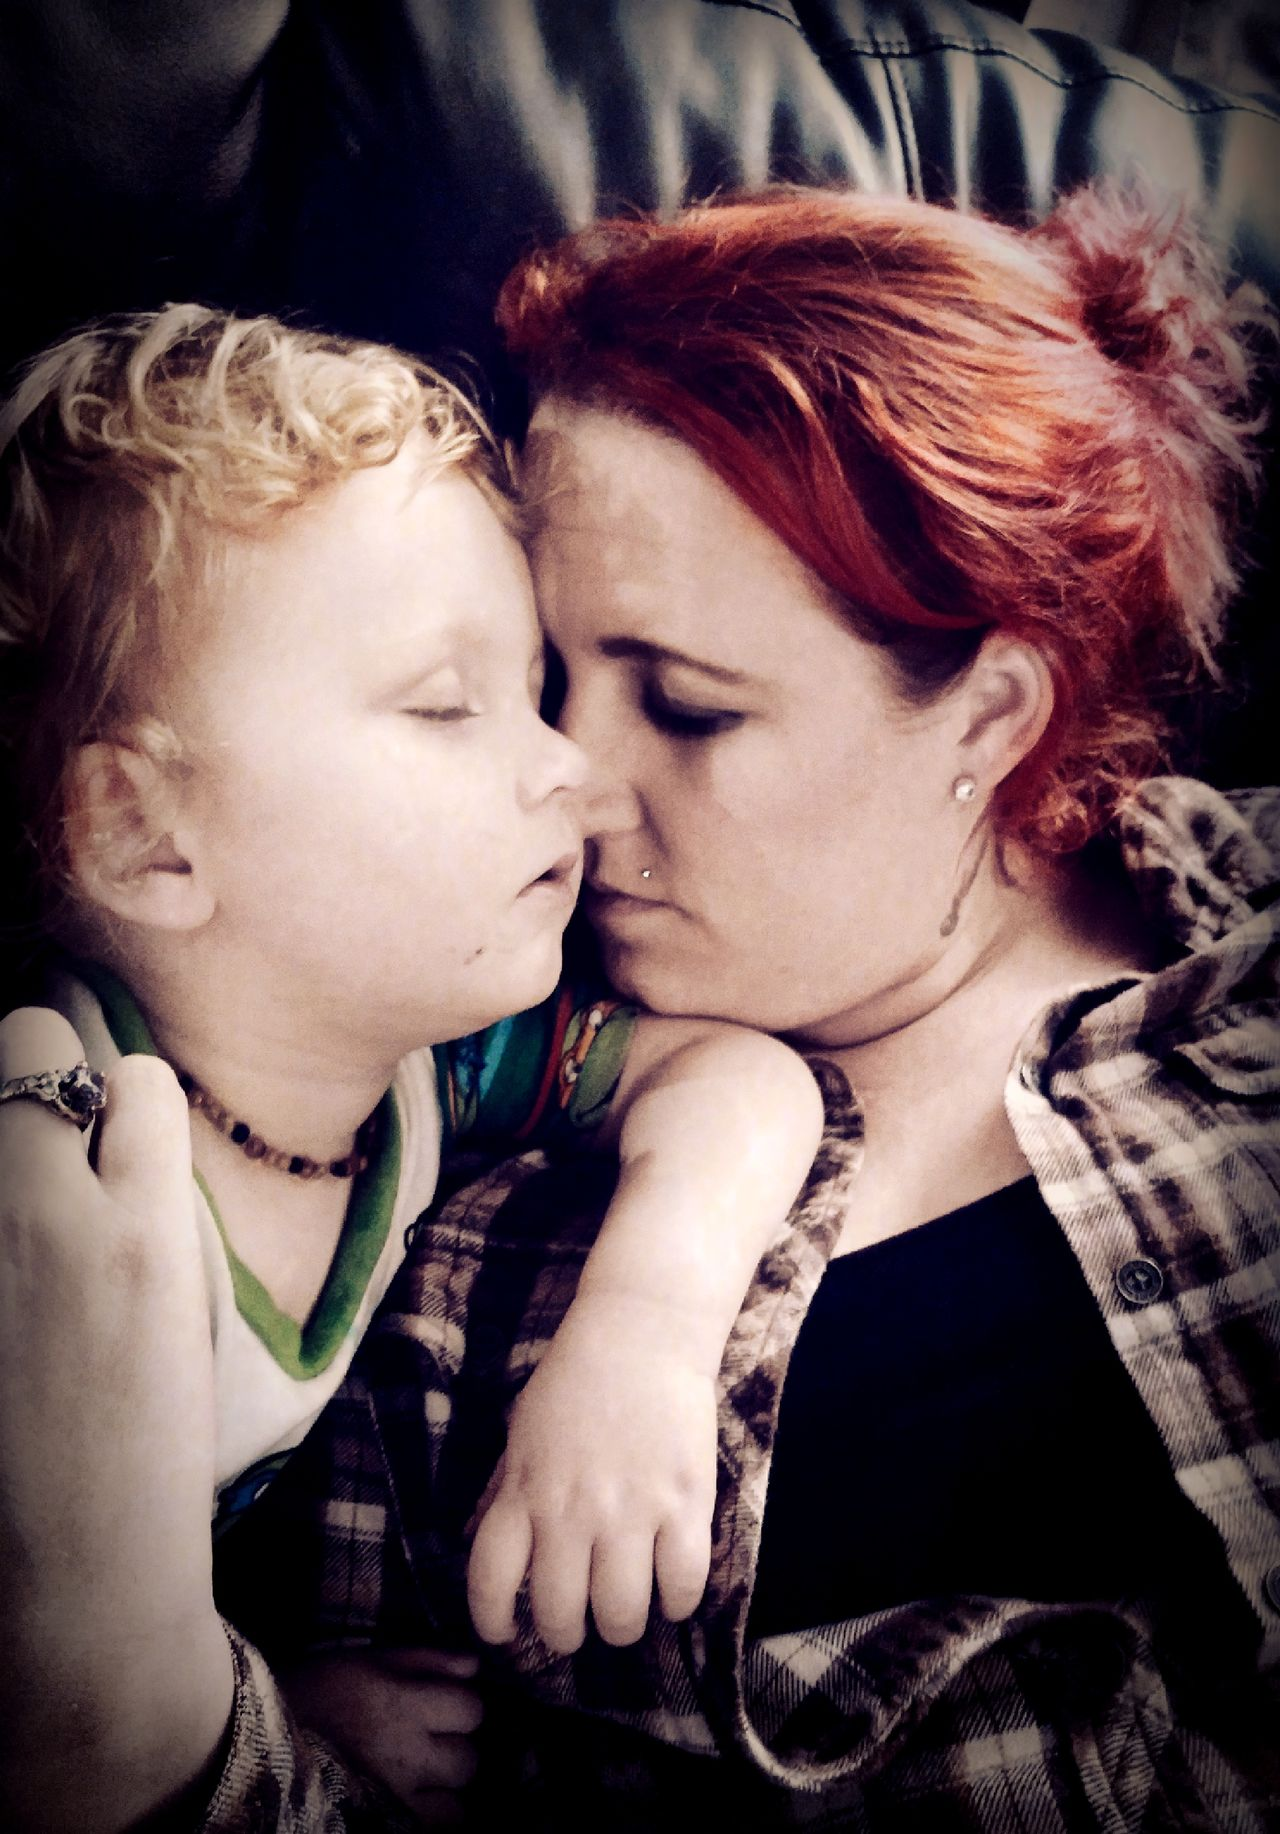 Two People Togetherness Love Indoors  Happiness Portrait Day Check This Out Mother And Child Mother And Son Adult And Child Motherslove Nap Time EyeEm Gallery Portrait Photography Portraits Of EyeEm Red Hair Family Time People Snuggly Close-up Enjoy The New Normal